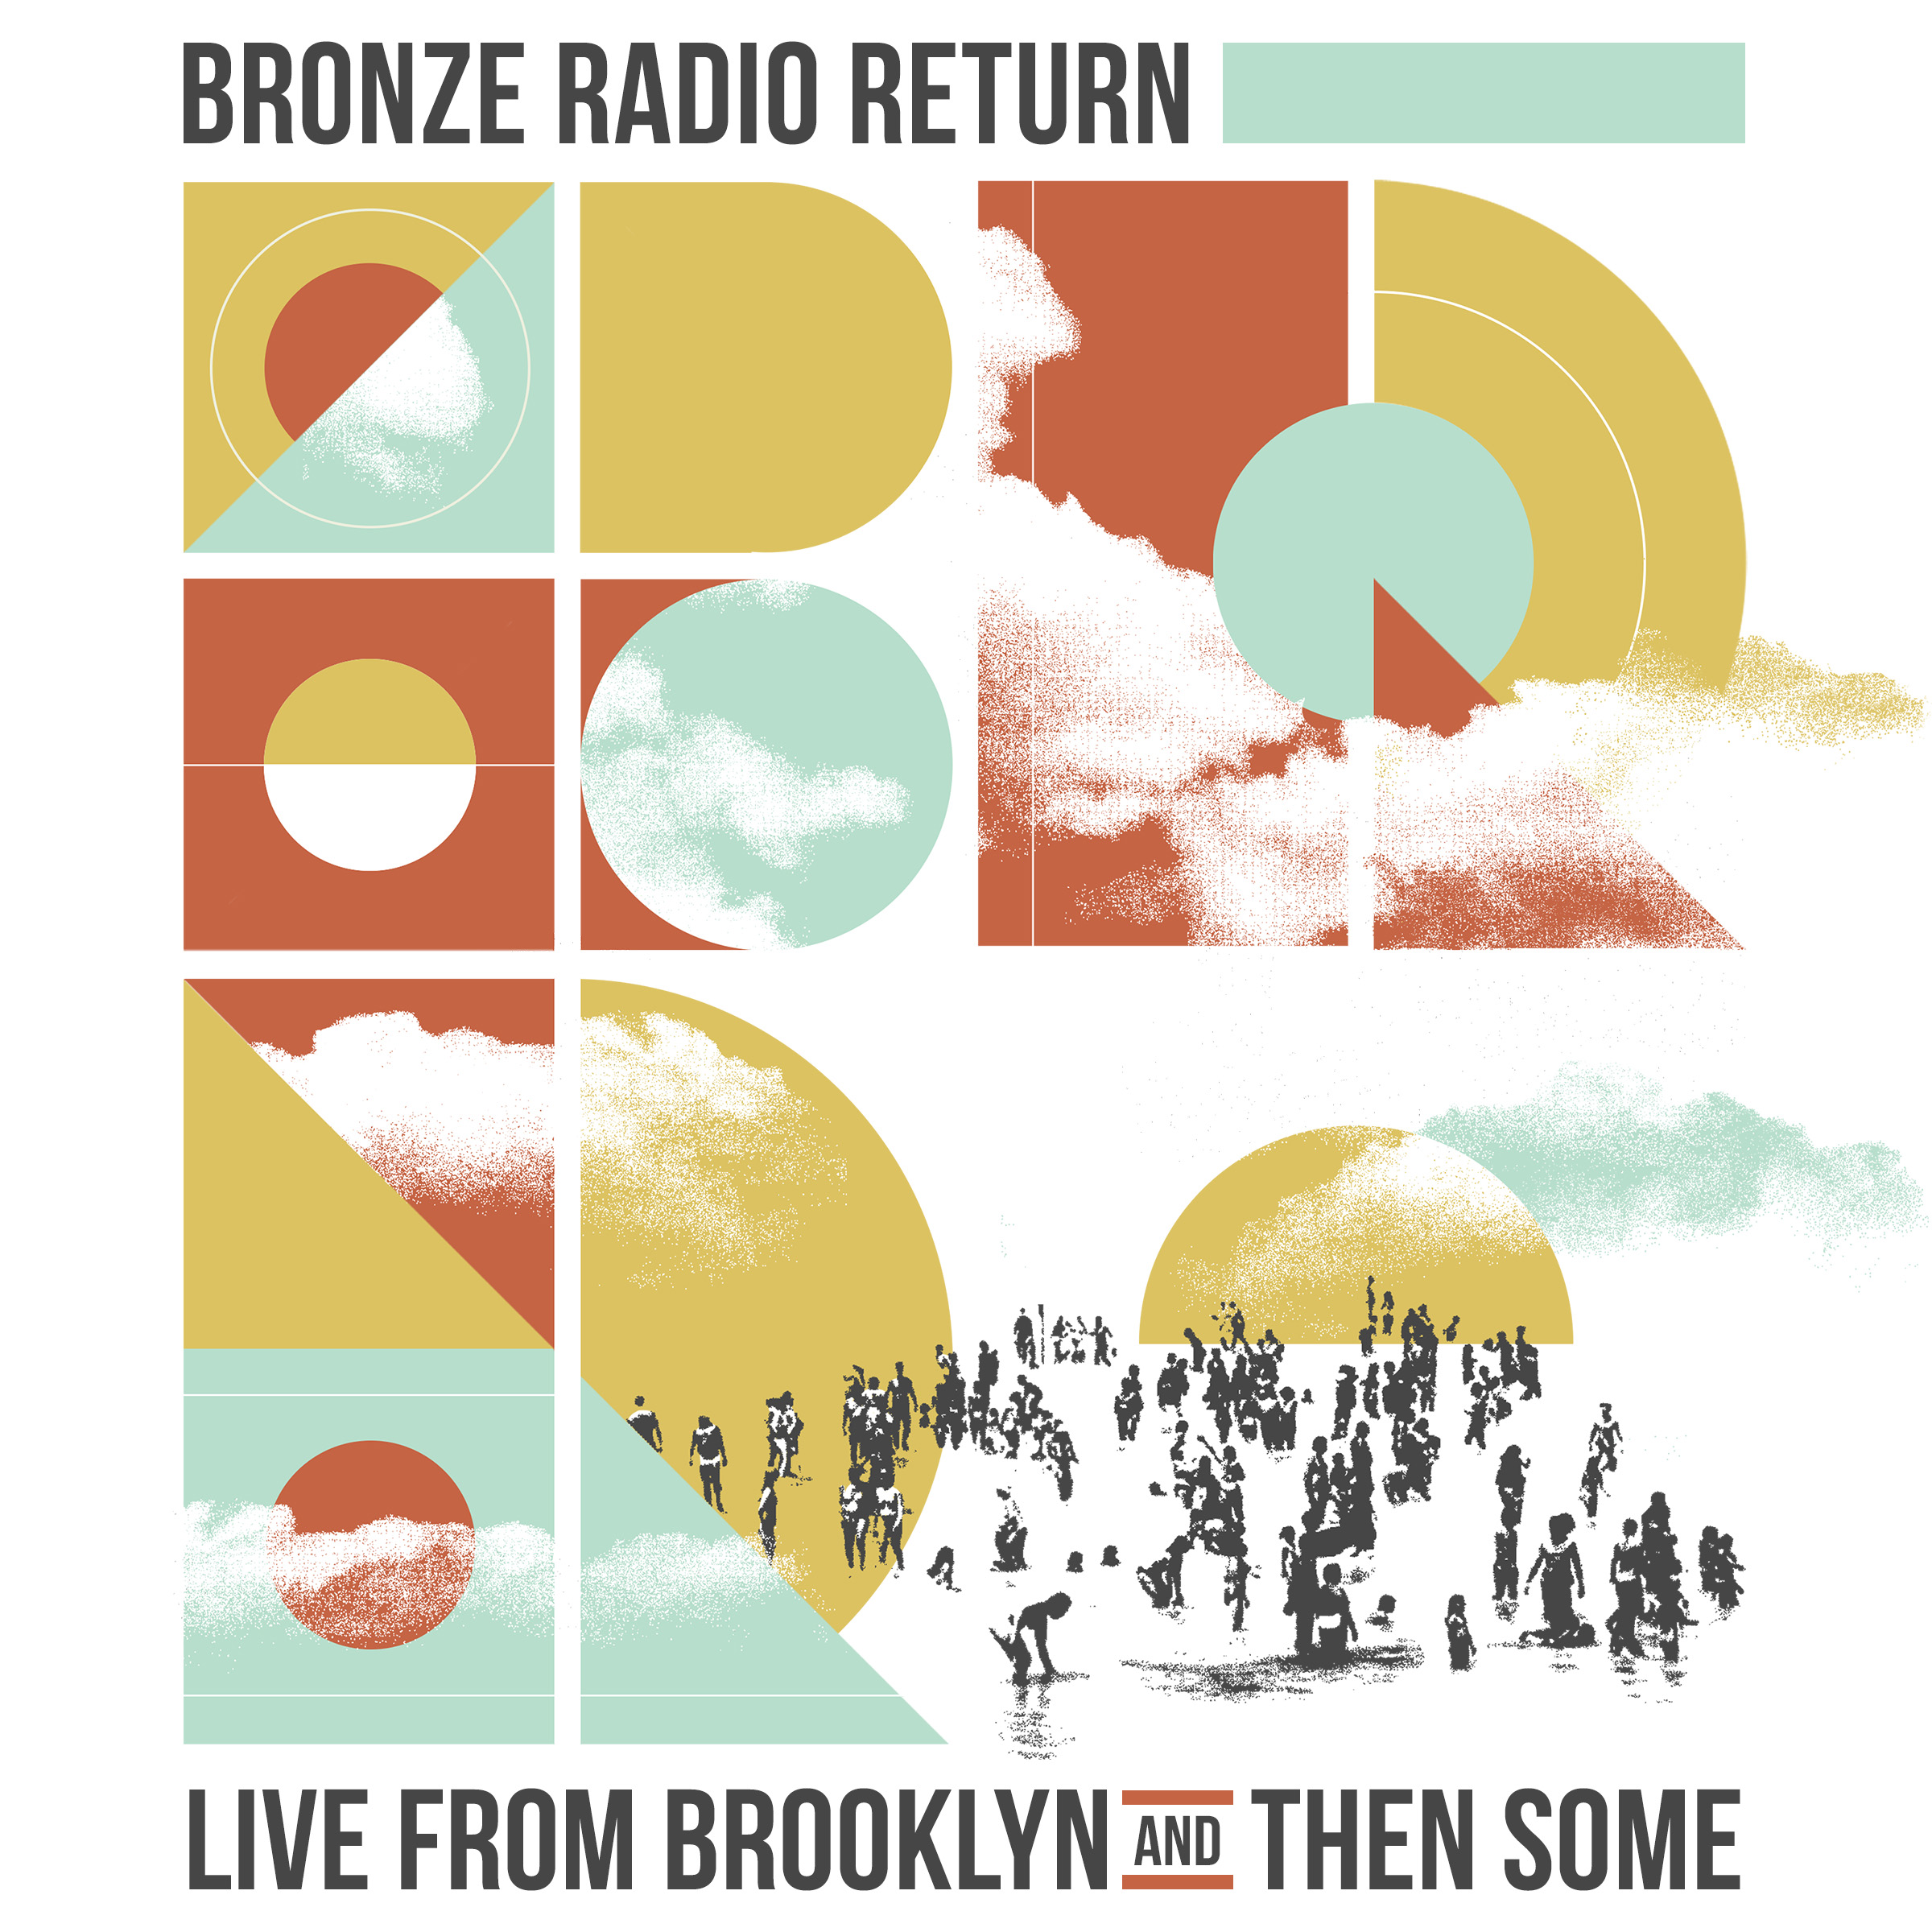 Live From Brooklyn And Then Some (2016)      1. Pocket Knife (live) 2. Light Me Up (live) 3. Down There (live) 4. Only Temporary (live) 5. Shake, Shake, Shake (live) 6. Still In Motion (bonus studio track)     7. Where I'm Coming From (bonus studio track)